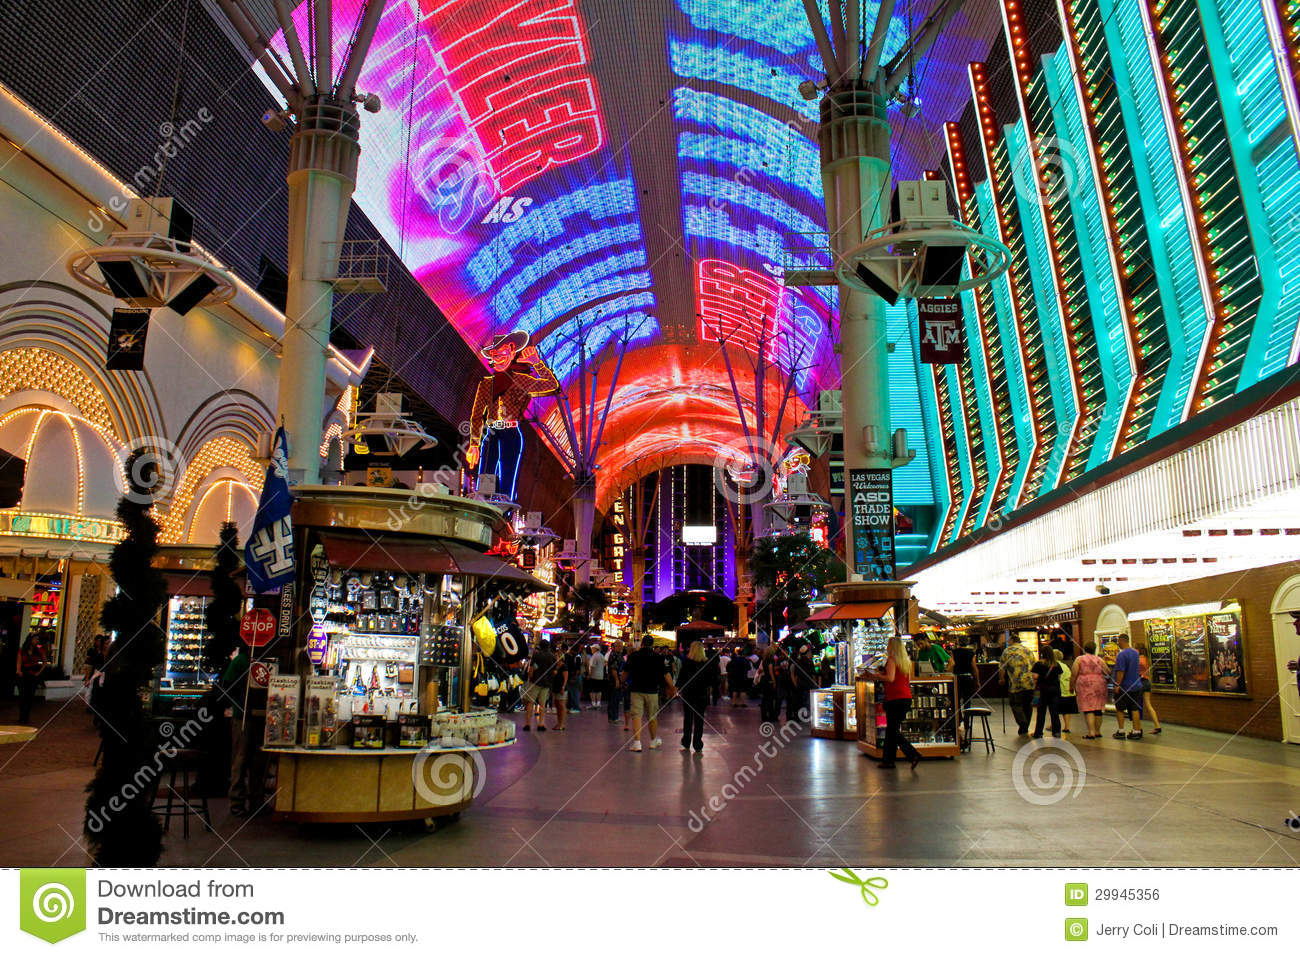 Searcys At The Gherkin furthermore Zero Energy In The 2015 New American Home as well Royalty Free Stock Image Walking Around Old Town Downtown Las Vegas Nv Image29945356 furthermore Caesars Palace Las Vegas Statue 573599 further Africa Youve Never Seen. on architecture building in las vegas